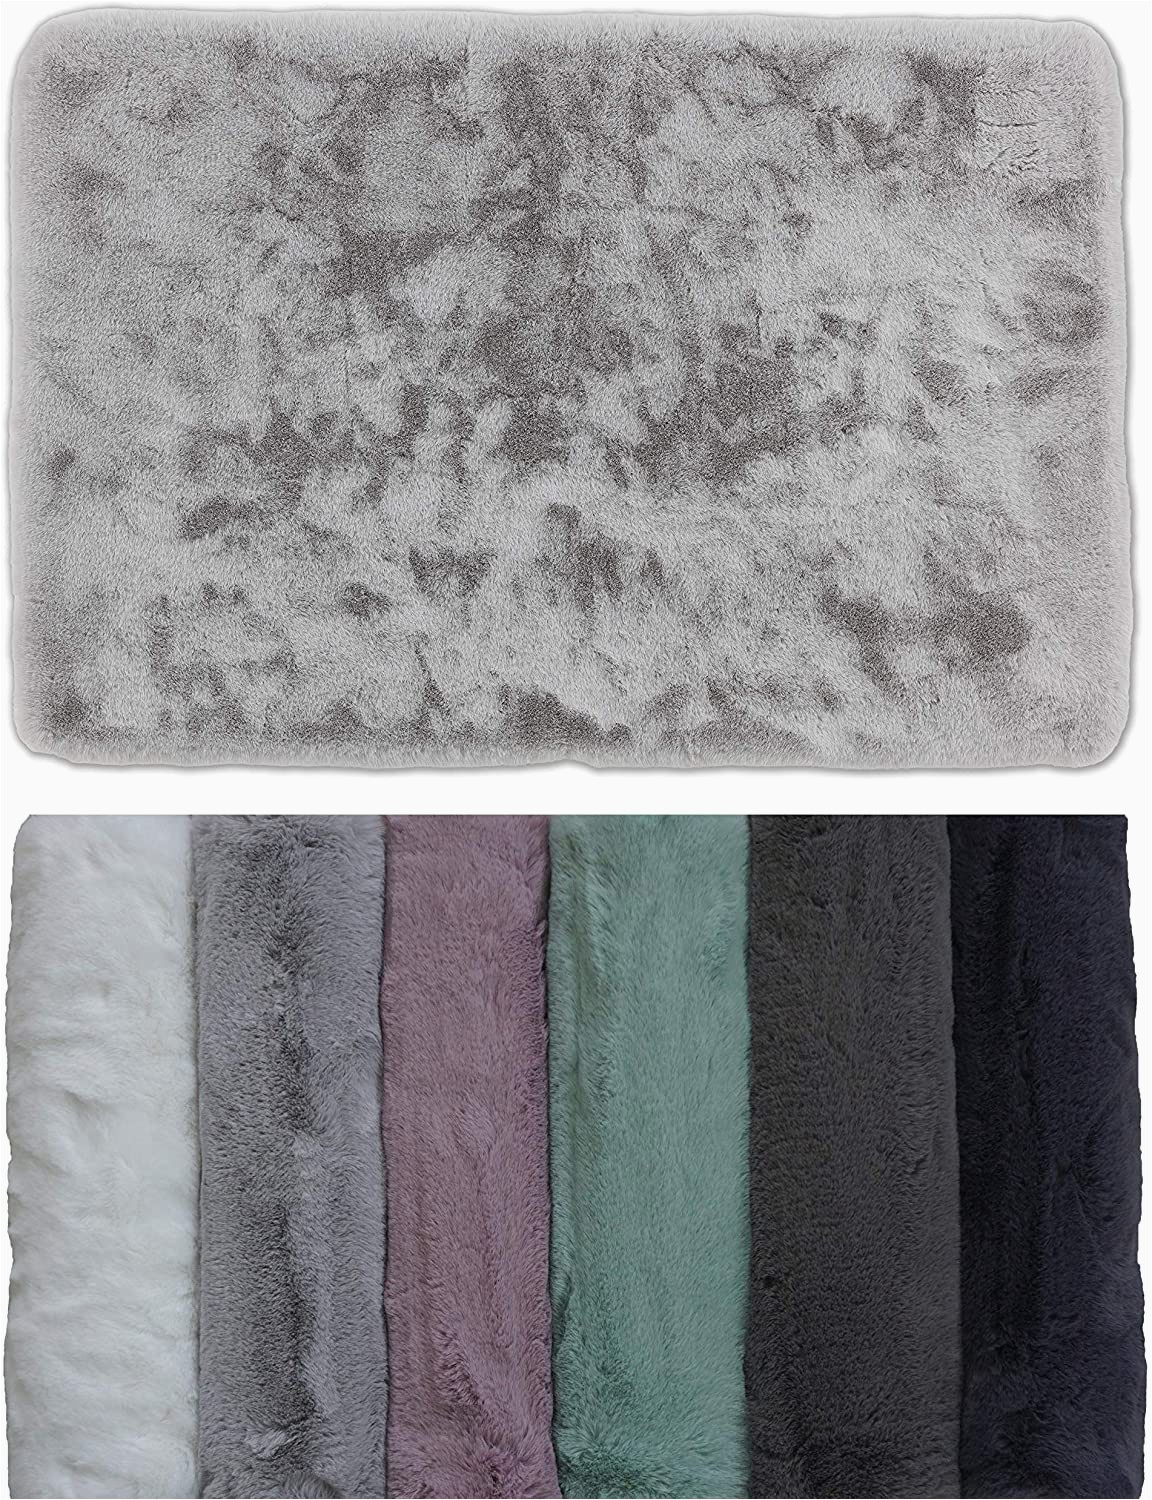 40 X 60 Bath Rug Schöner Wohnen Bathroom Rug Very Fluffy Bath Mat Washable